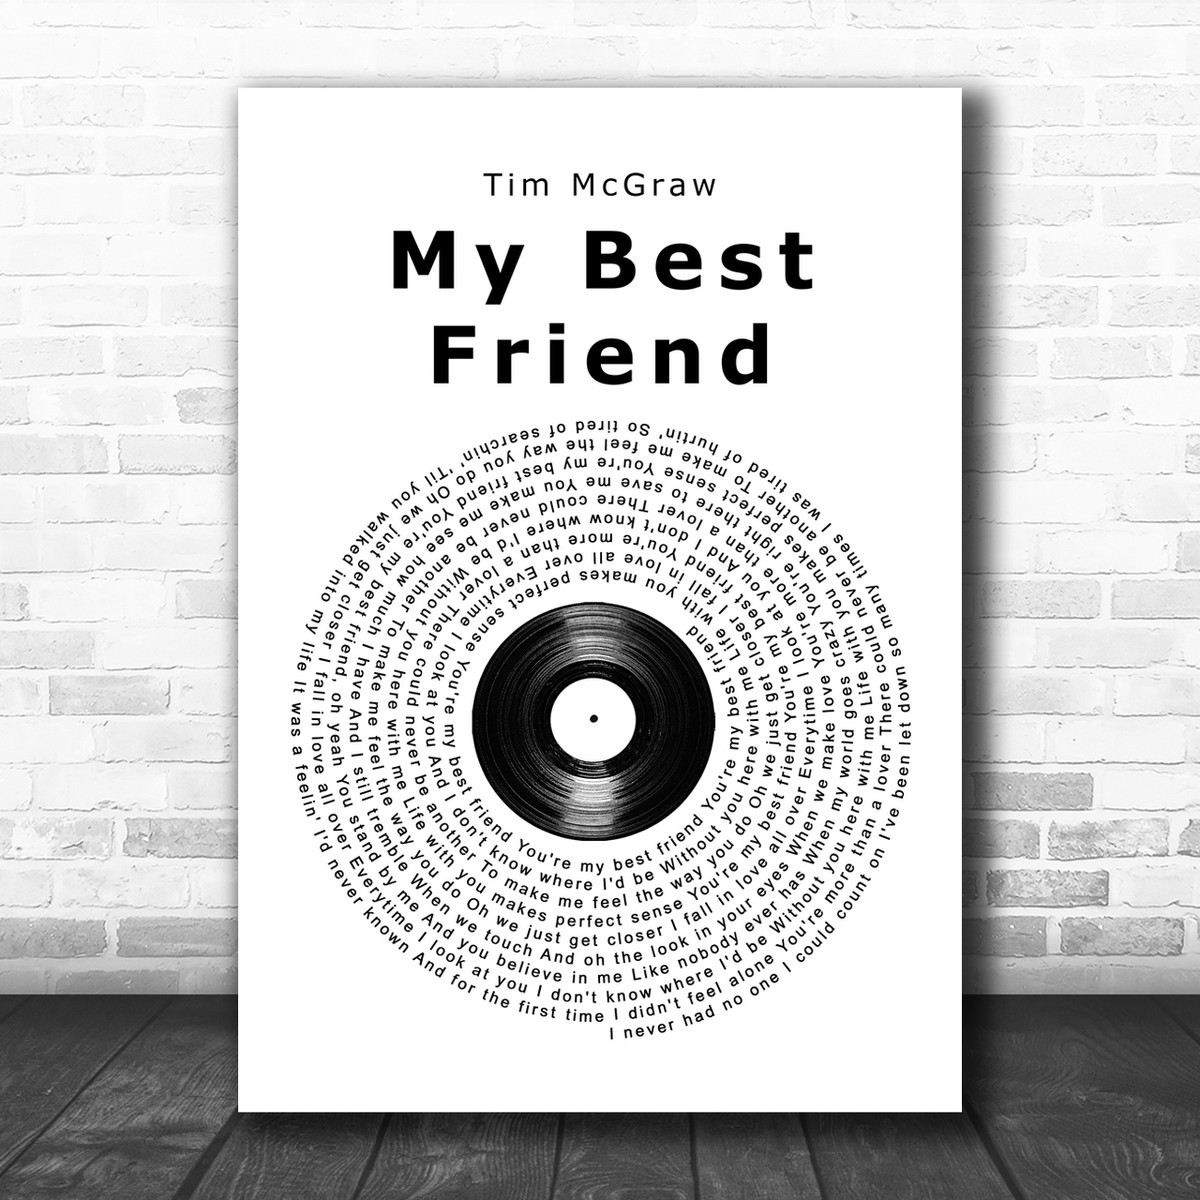 Tim McGraw My Best Friend Vinyl Record Song Lyric Music Wall Art Print